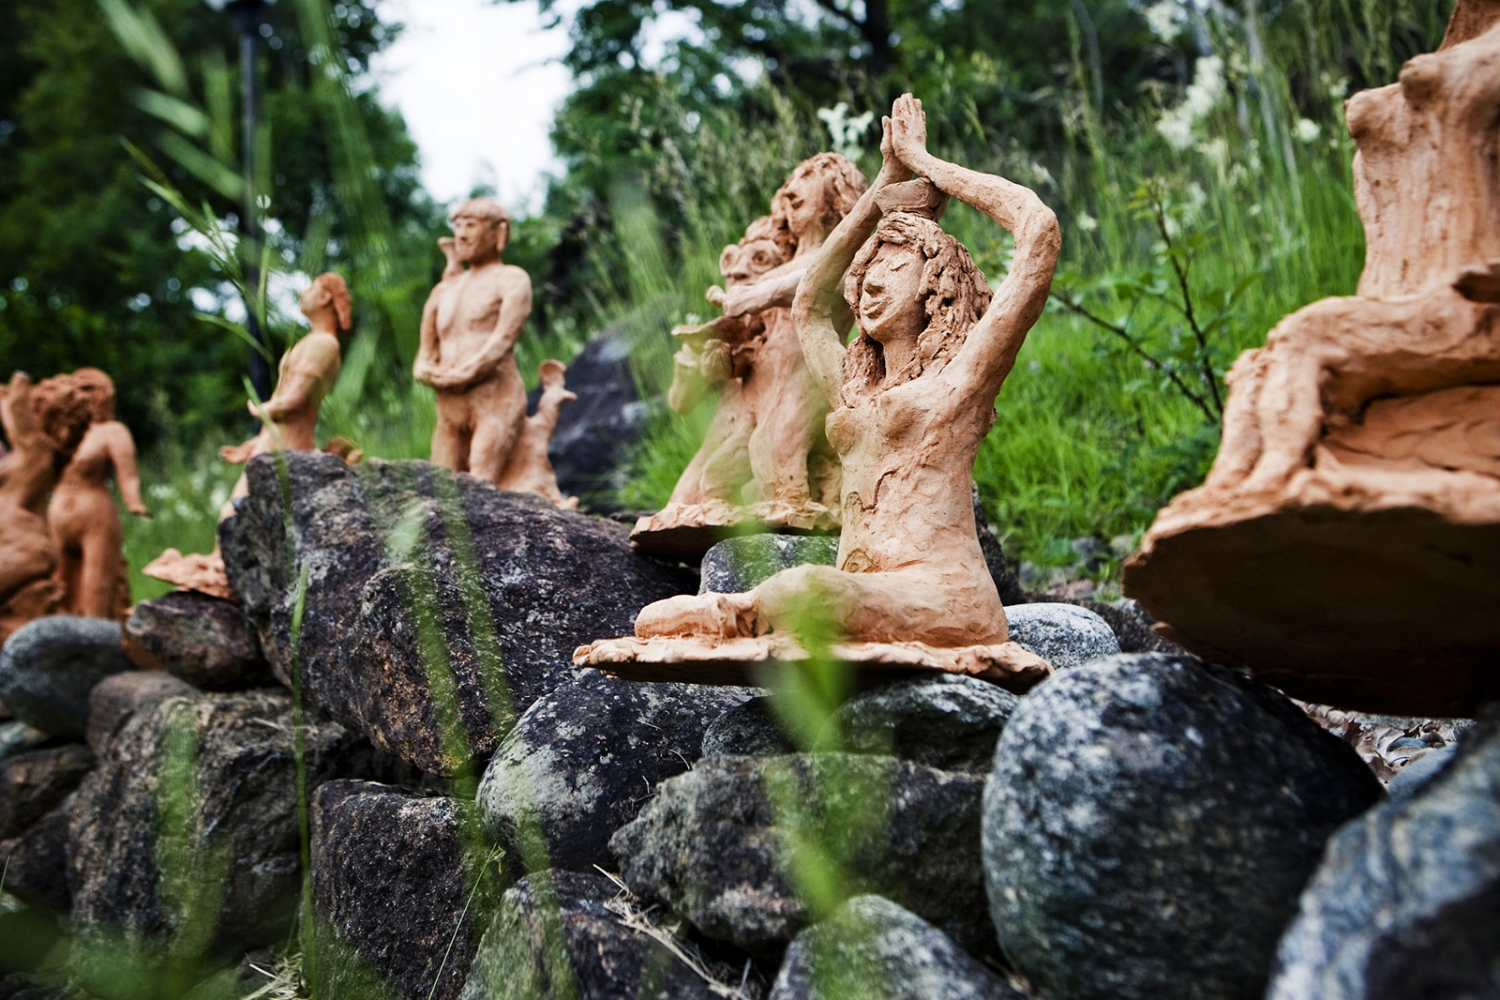 Clay statues that rapresent some of the Damanurian spiritual beliefs